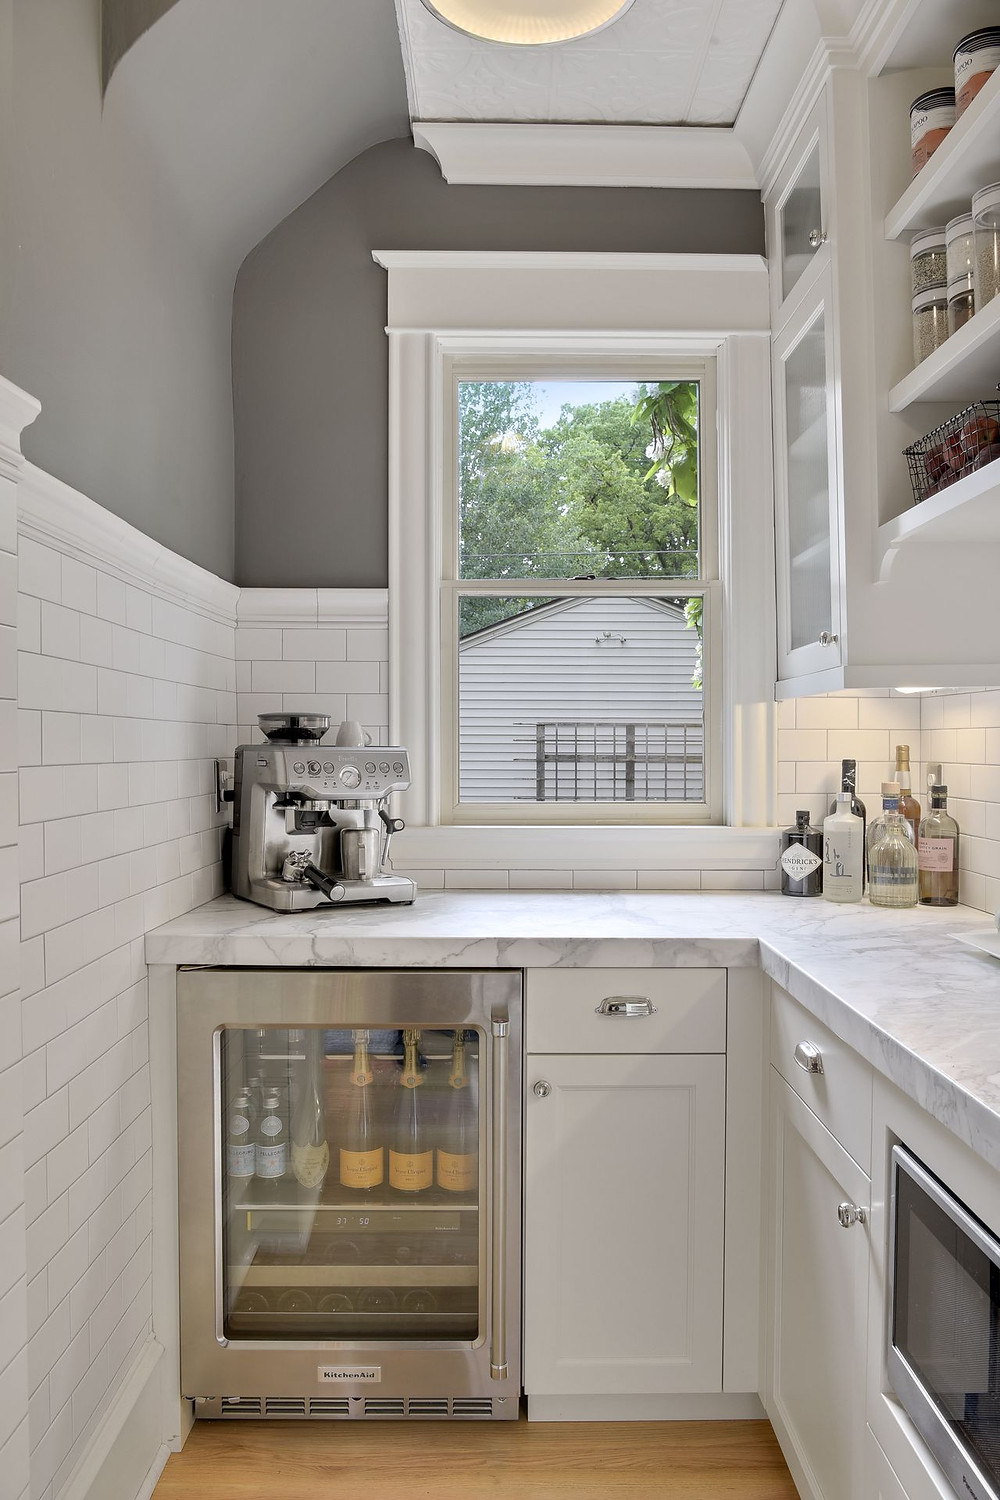 Custom cabinetry for pantry storage solutions